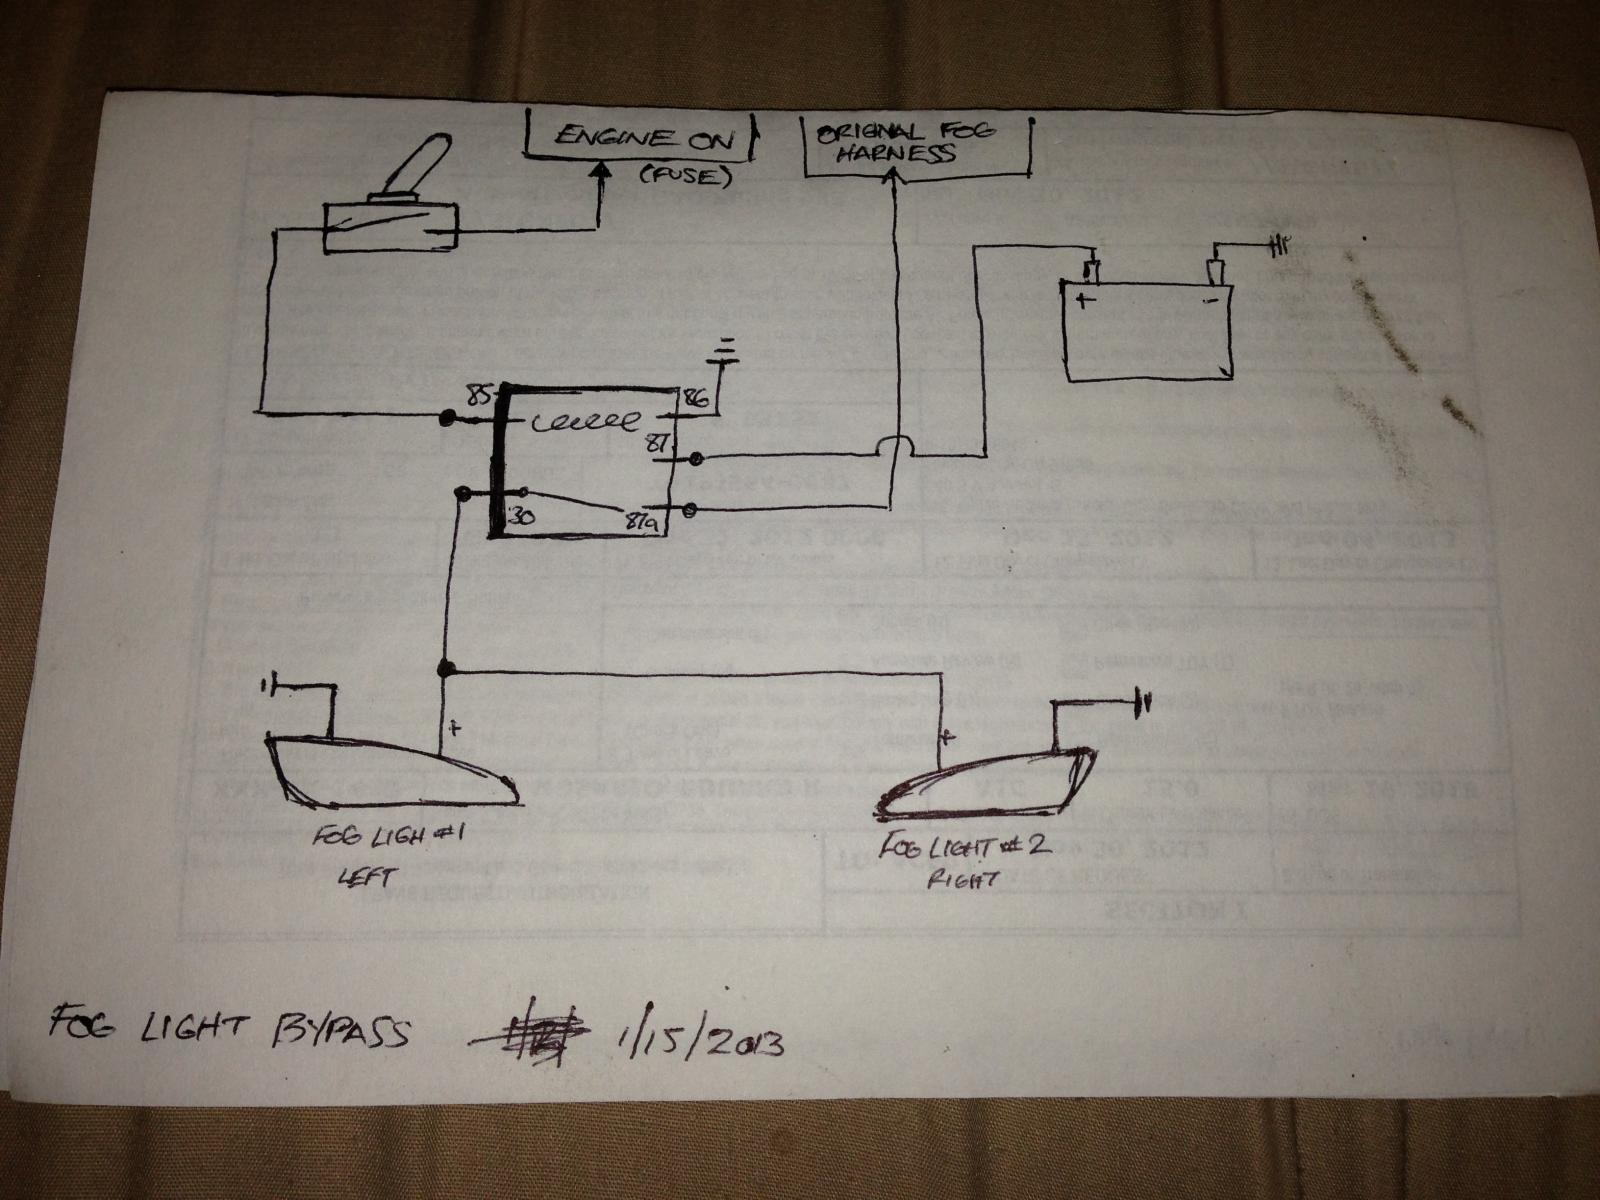 hight resolution of simple wiring diagram to bypass foglights works w o headlights or w fog light wiring harness fog light wiring diagram simple